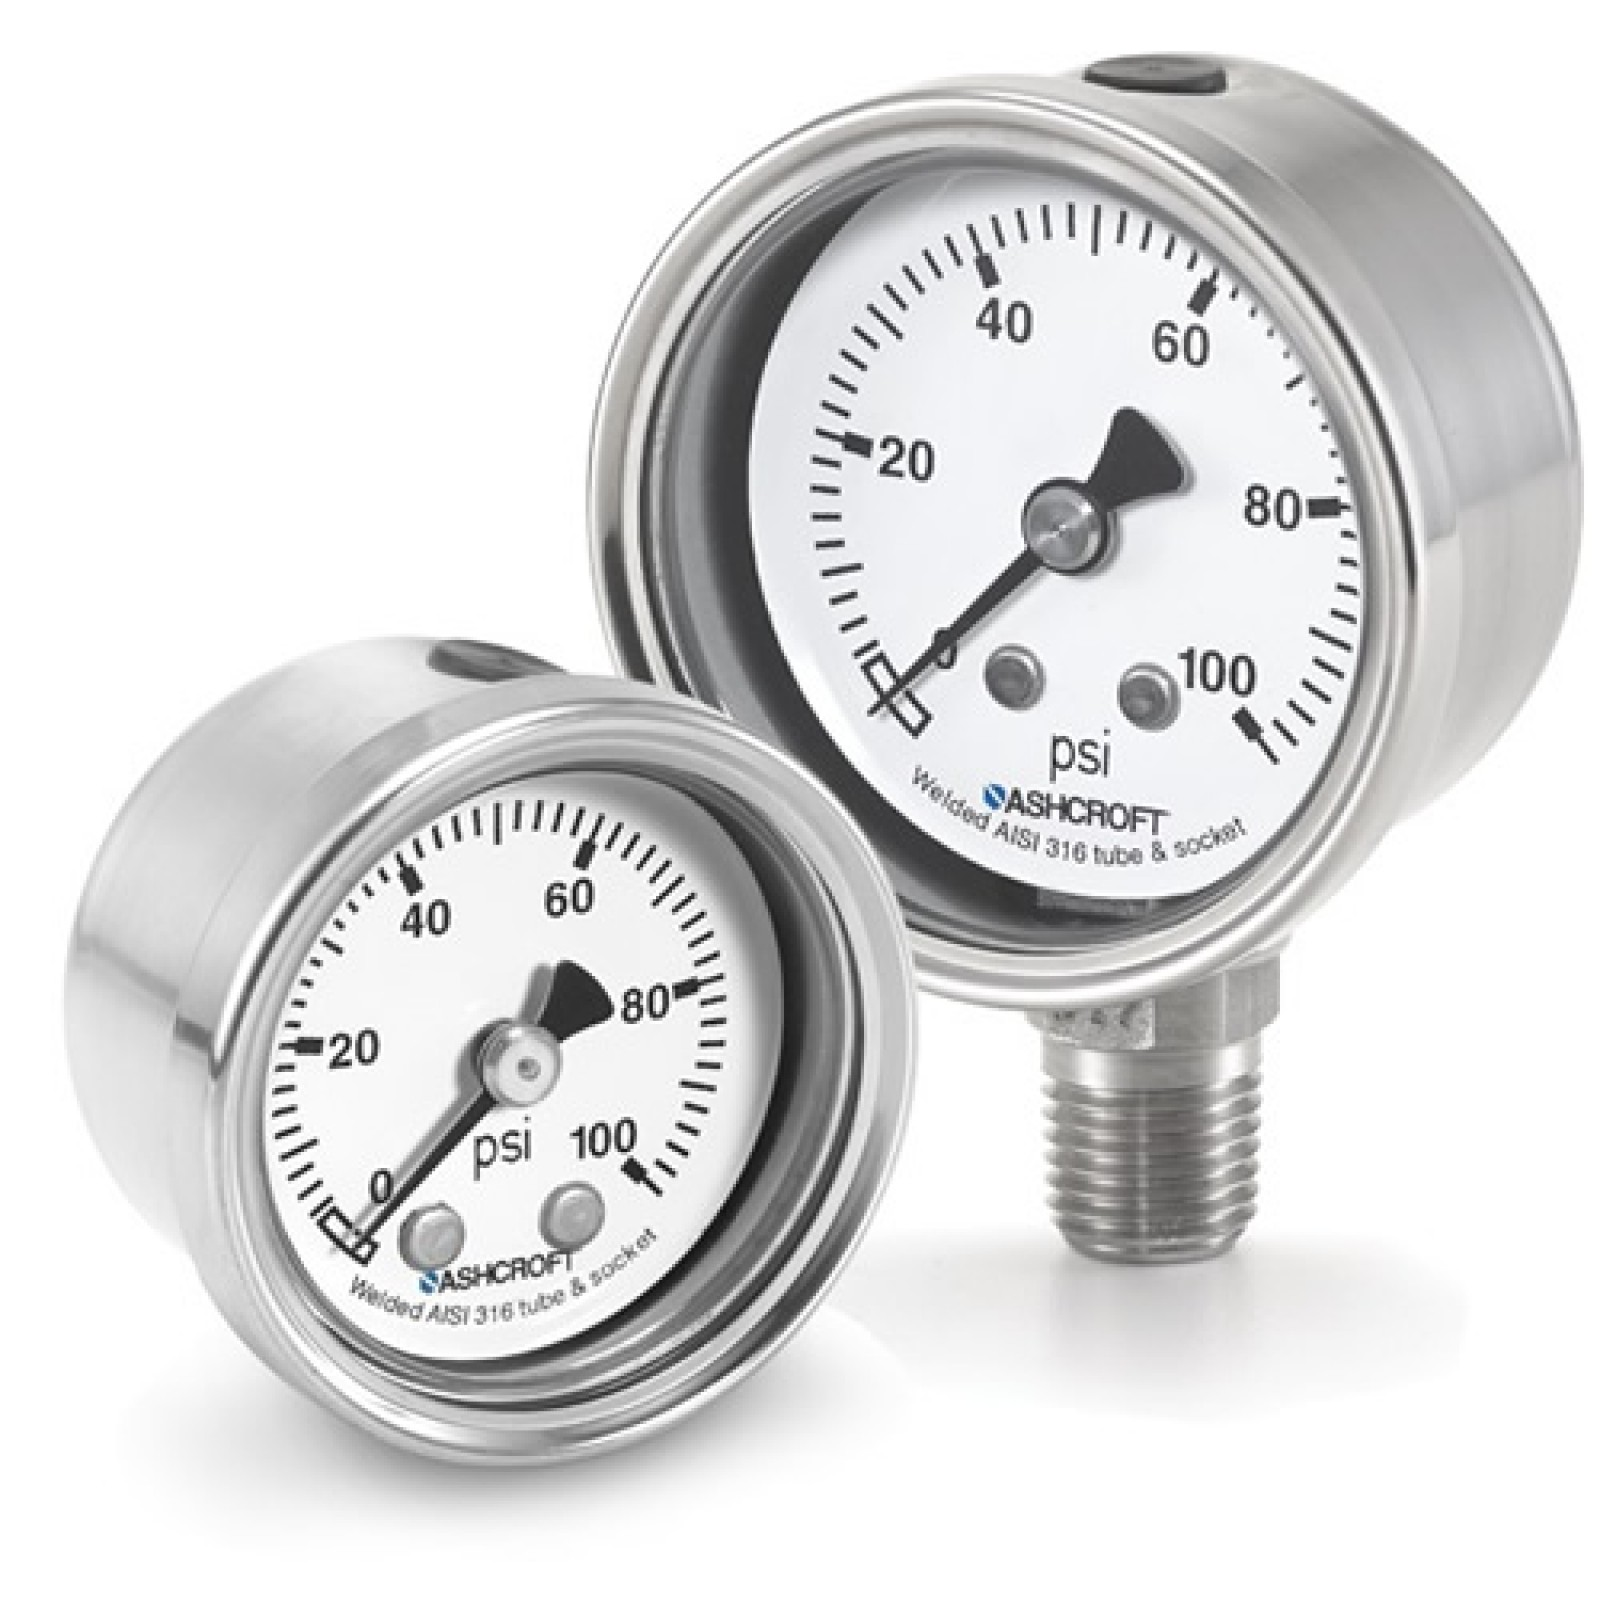 "63 1008S 02L XLL V/lOO#/KP - Pressure Gauge, 63mm stainless 1/4"" NPT Lower conn & Case, Plus Performance 30""hg/100 psi"